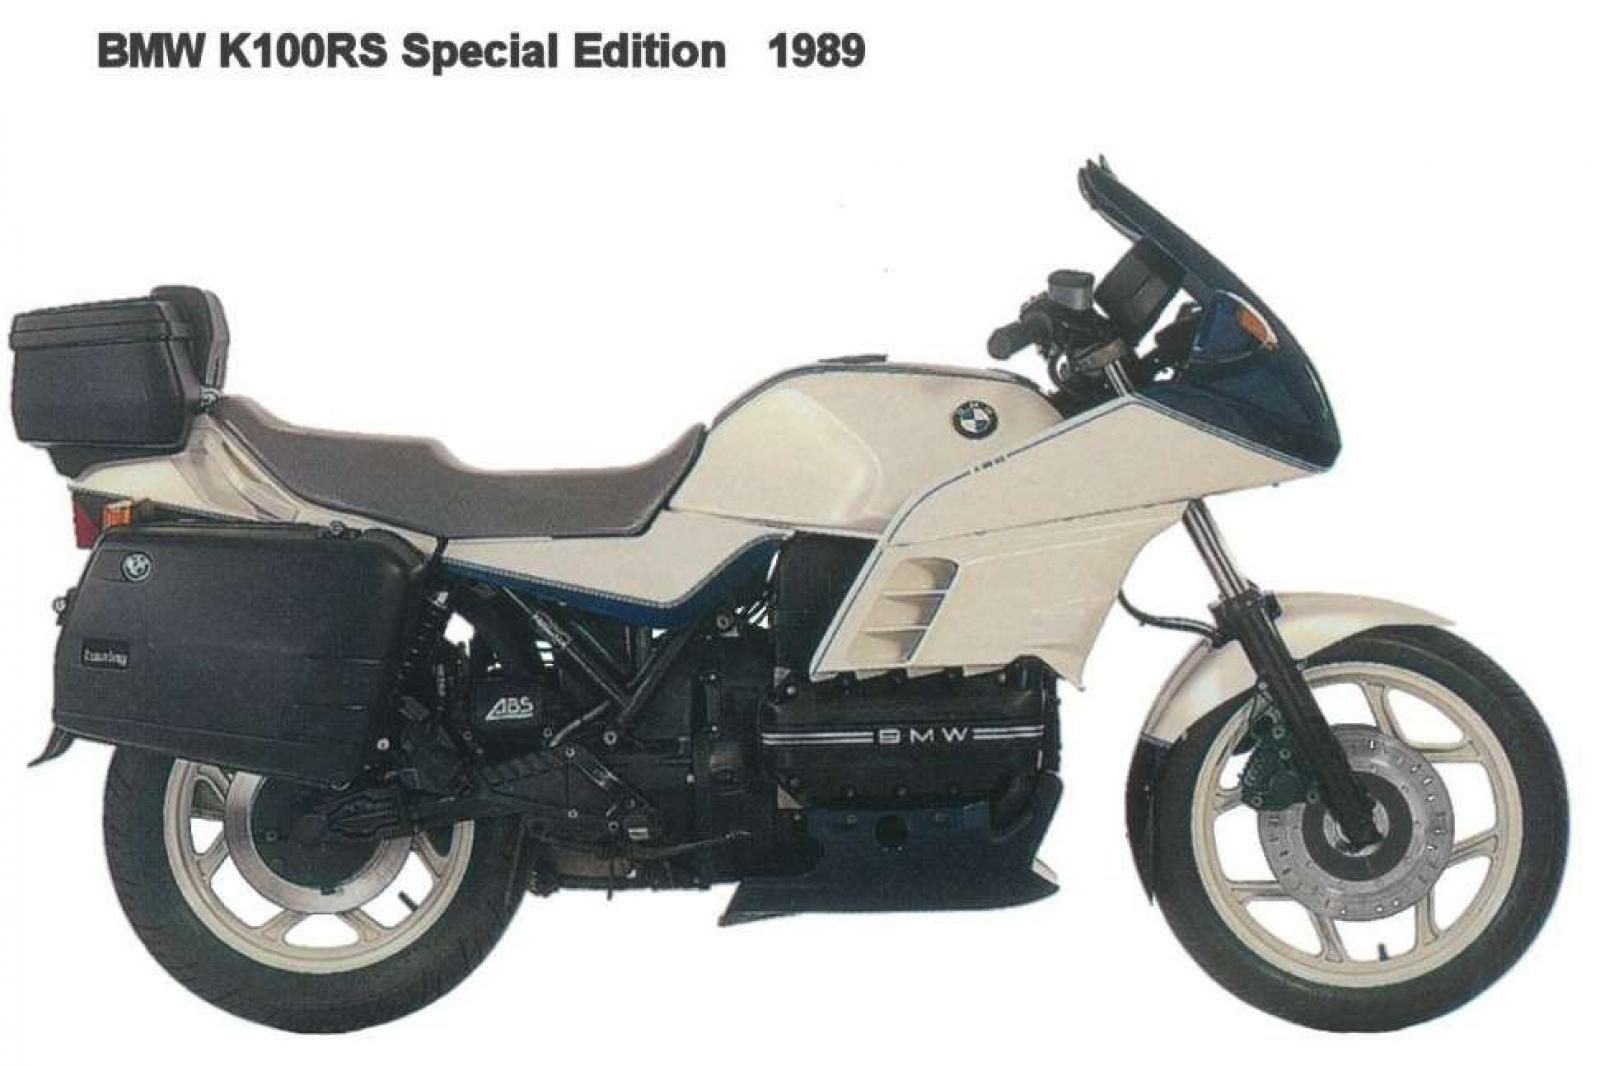 BMW K100RS images #4776